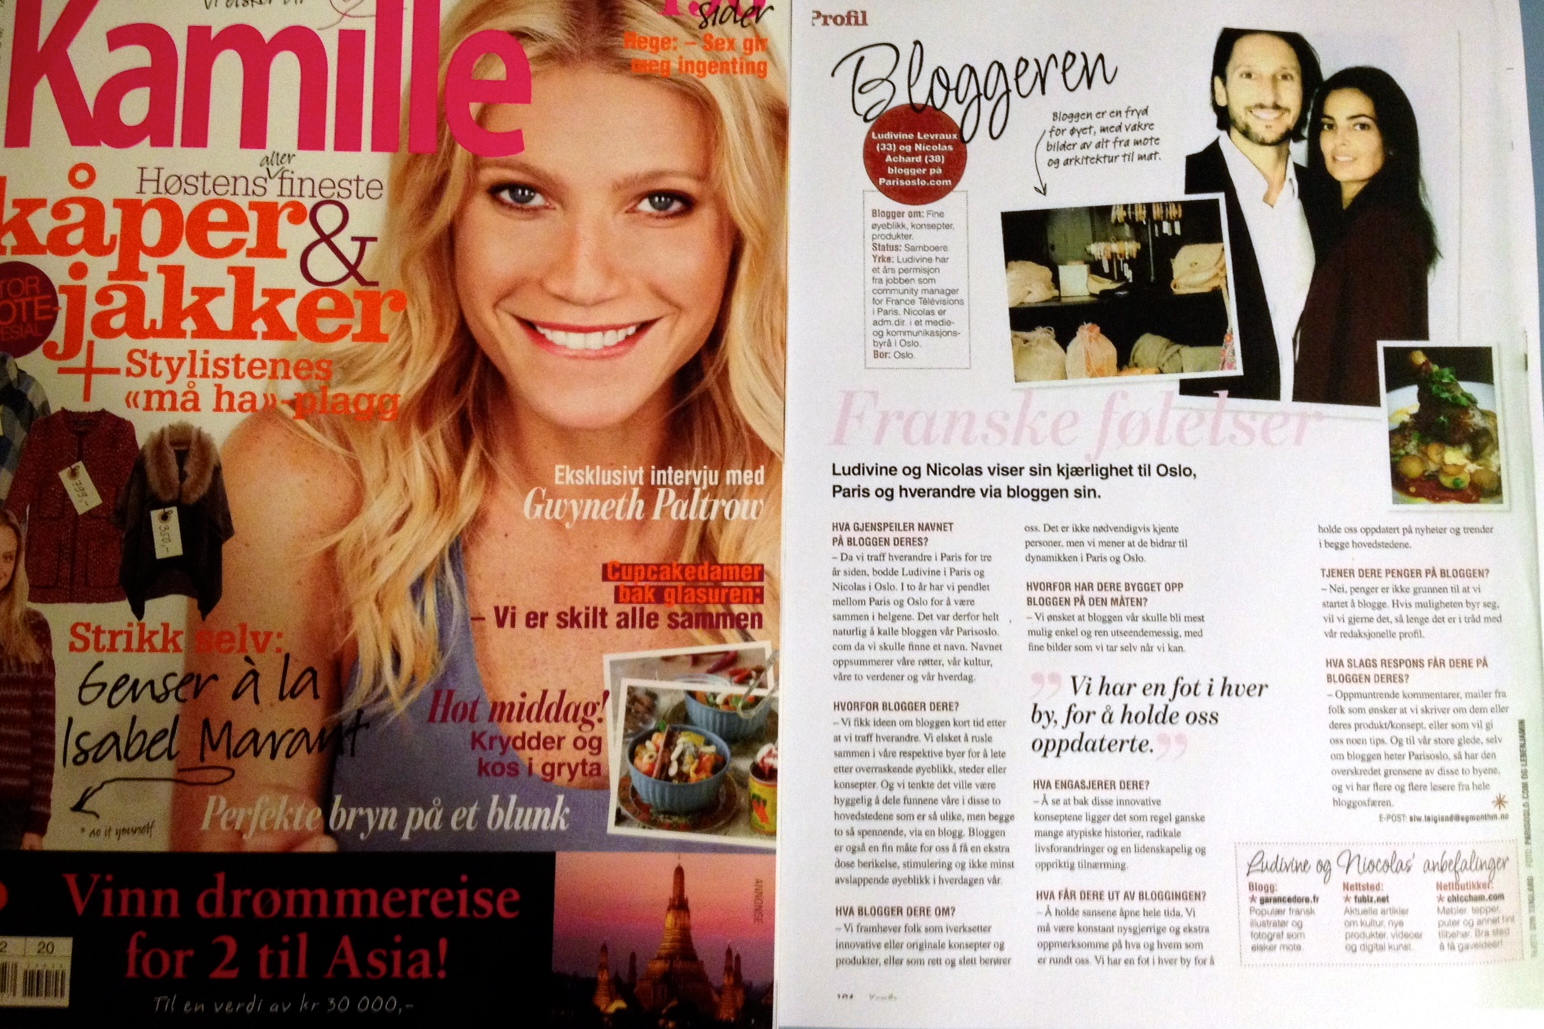 Article about Parisoslo.com in Kamille (september 2012)